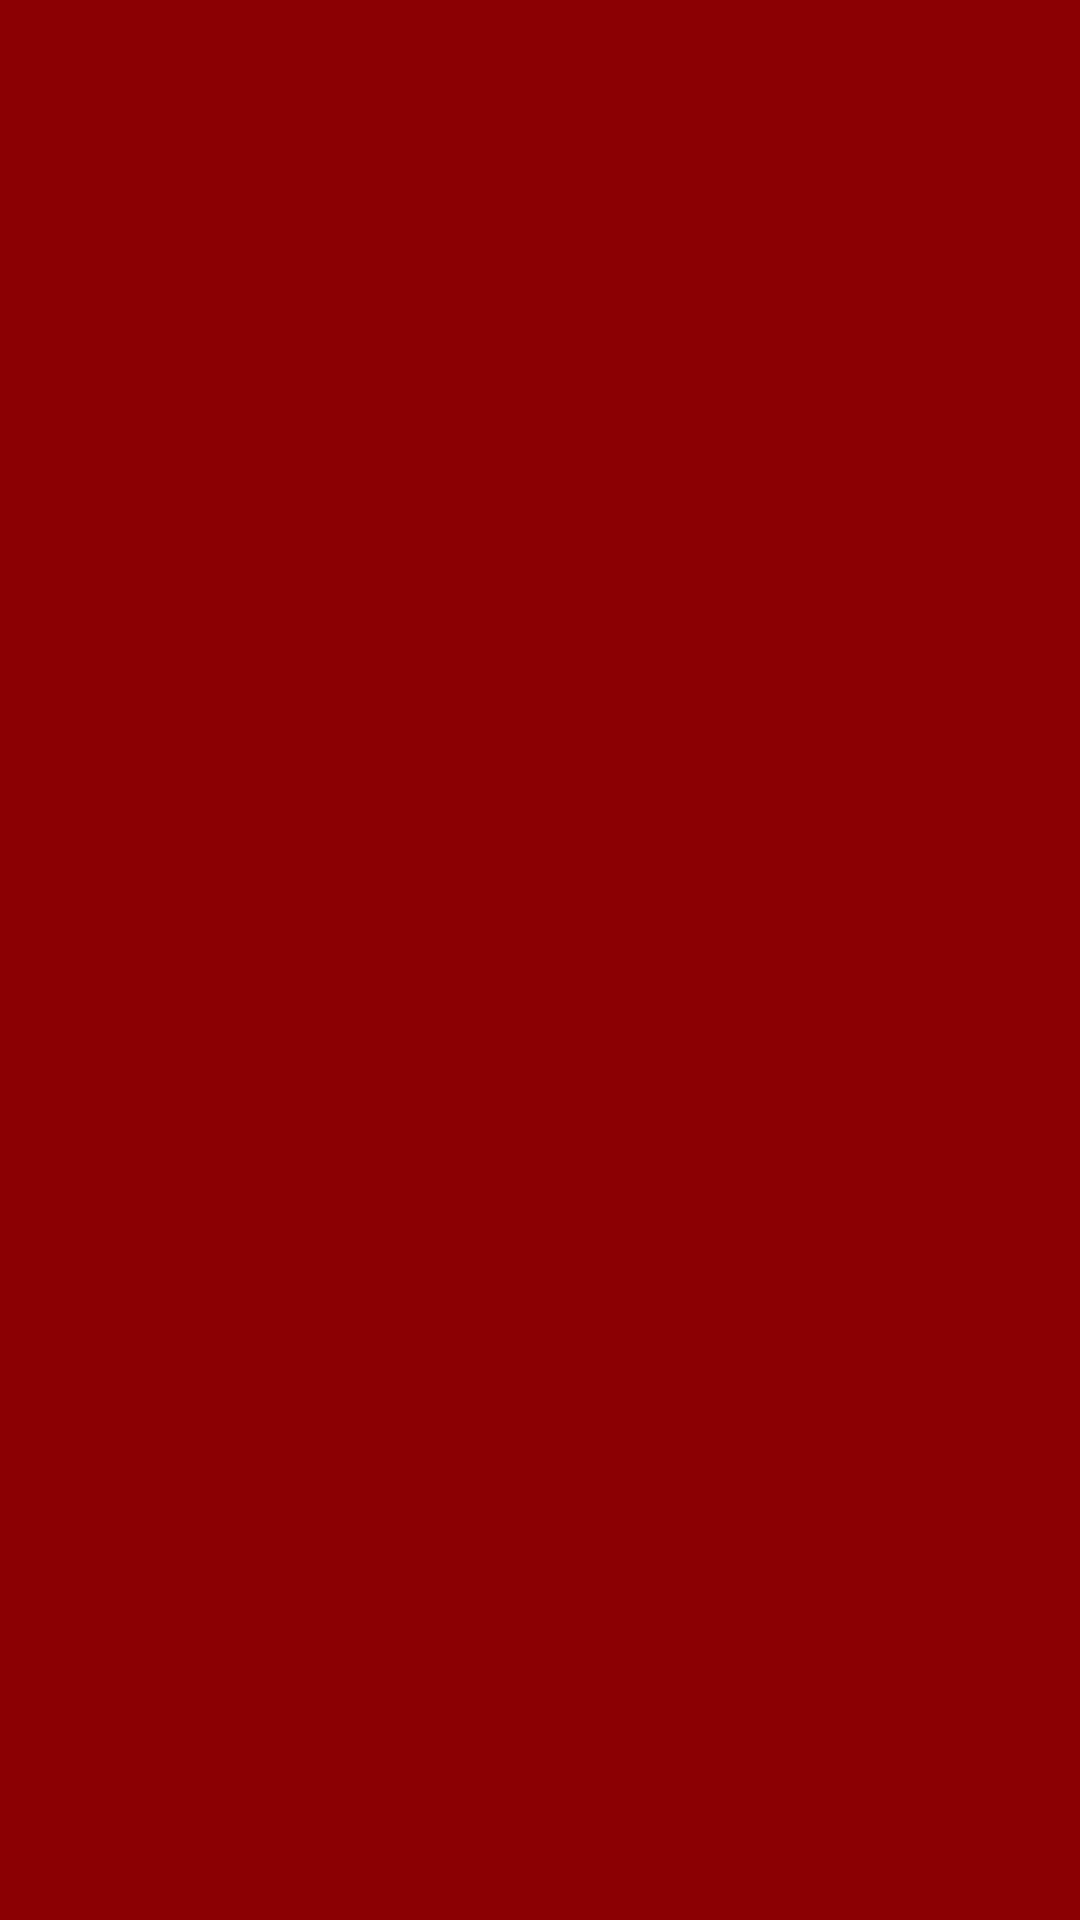 1080x1920 Dark Red Solid Color Background